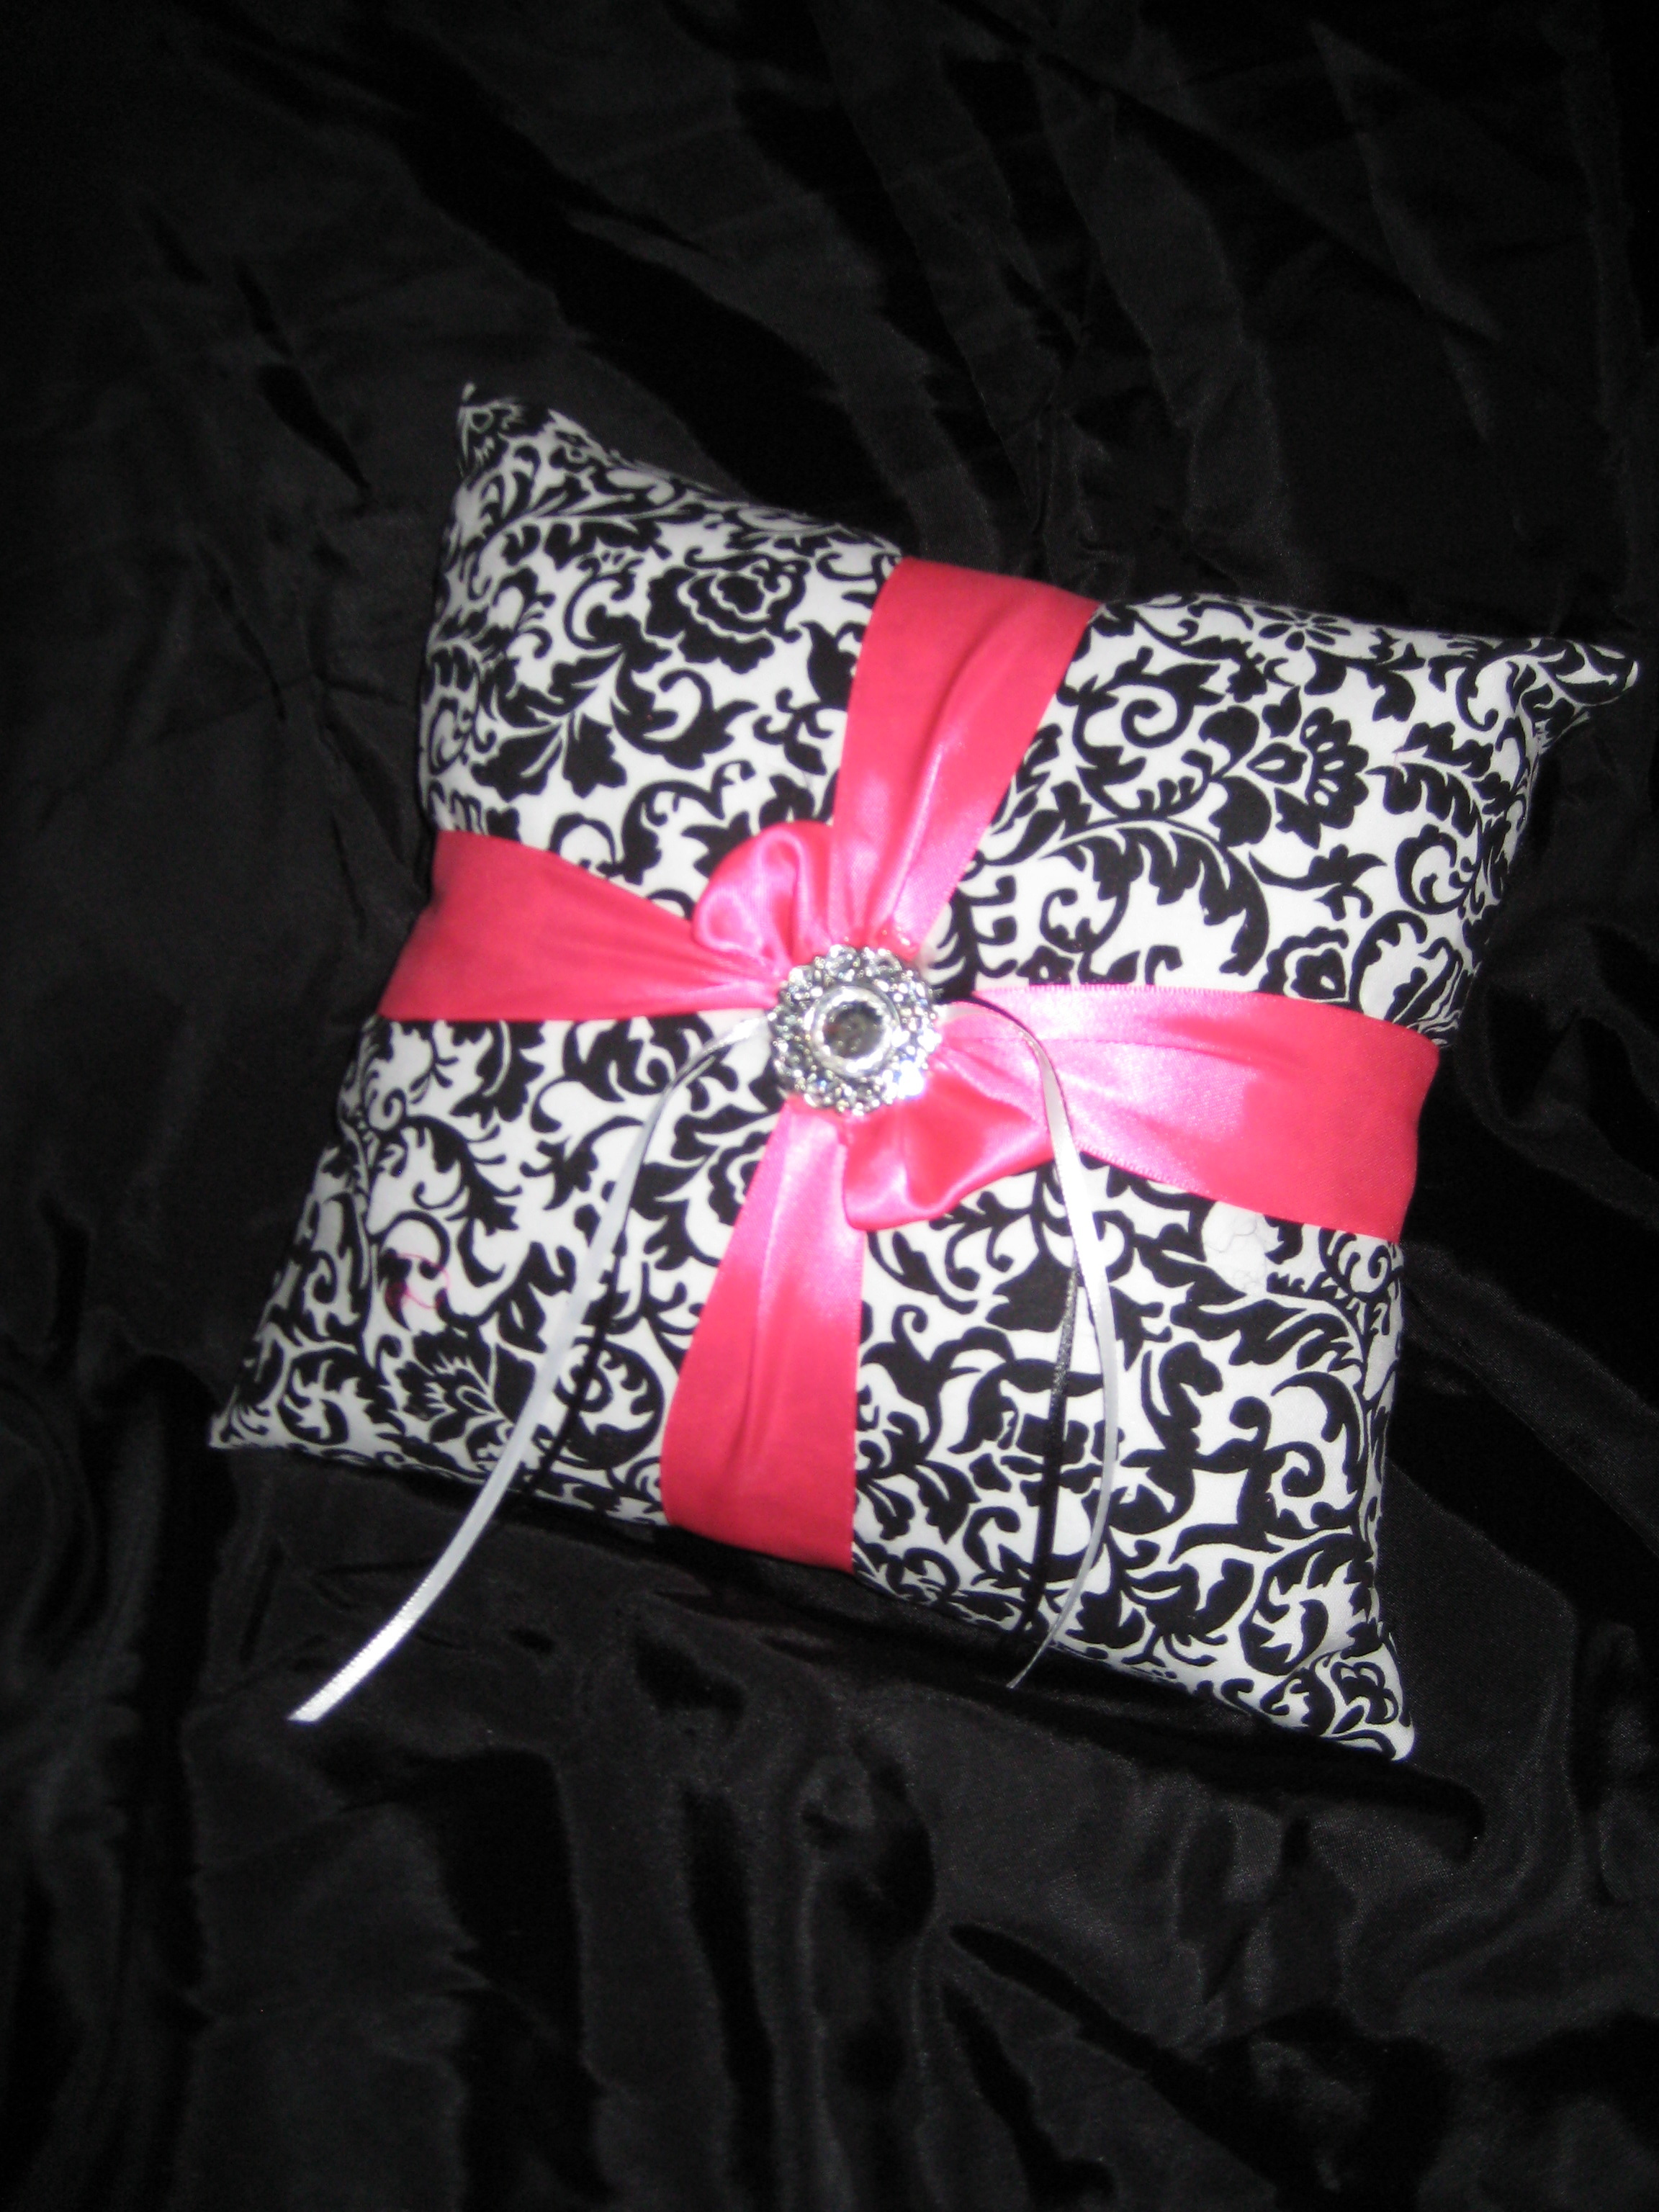 Ceremony, Flowers & Decor, white, pink, black, Ring, Pillow, Bearer